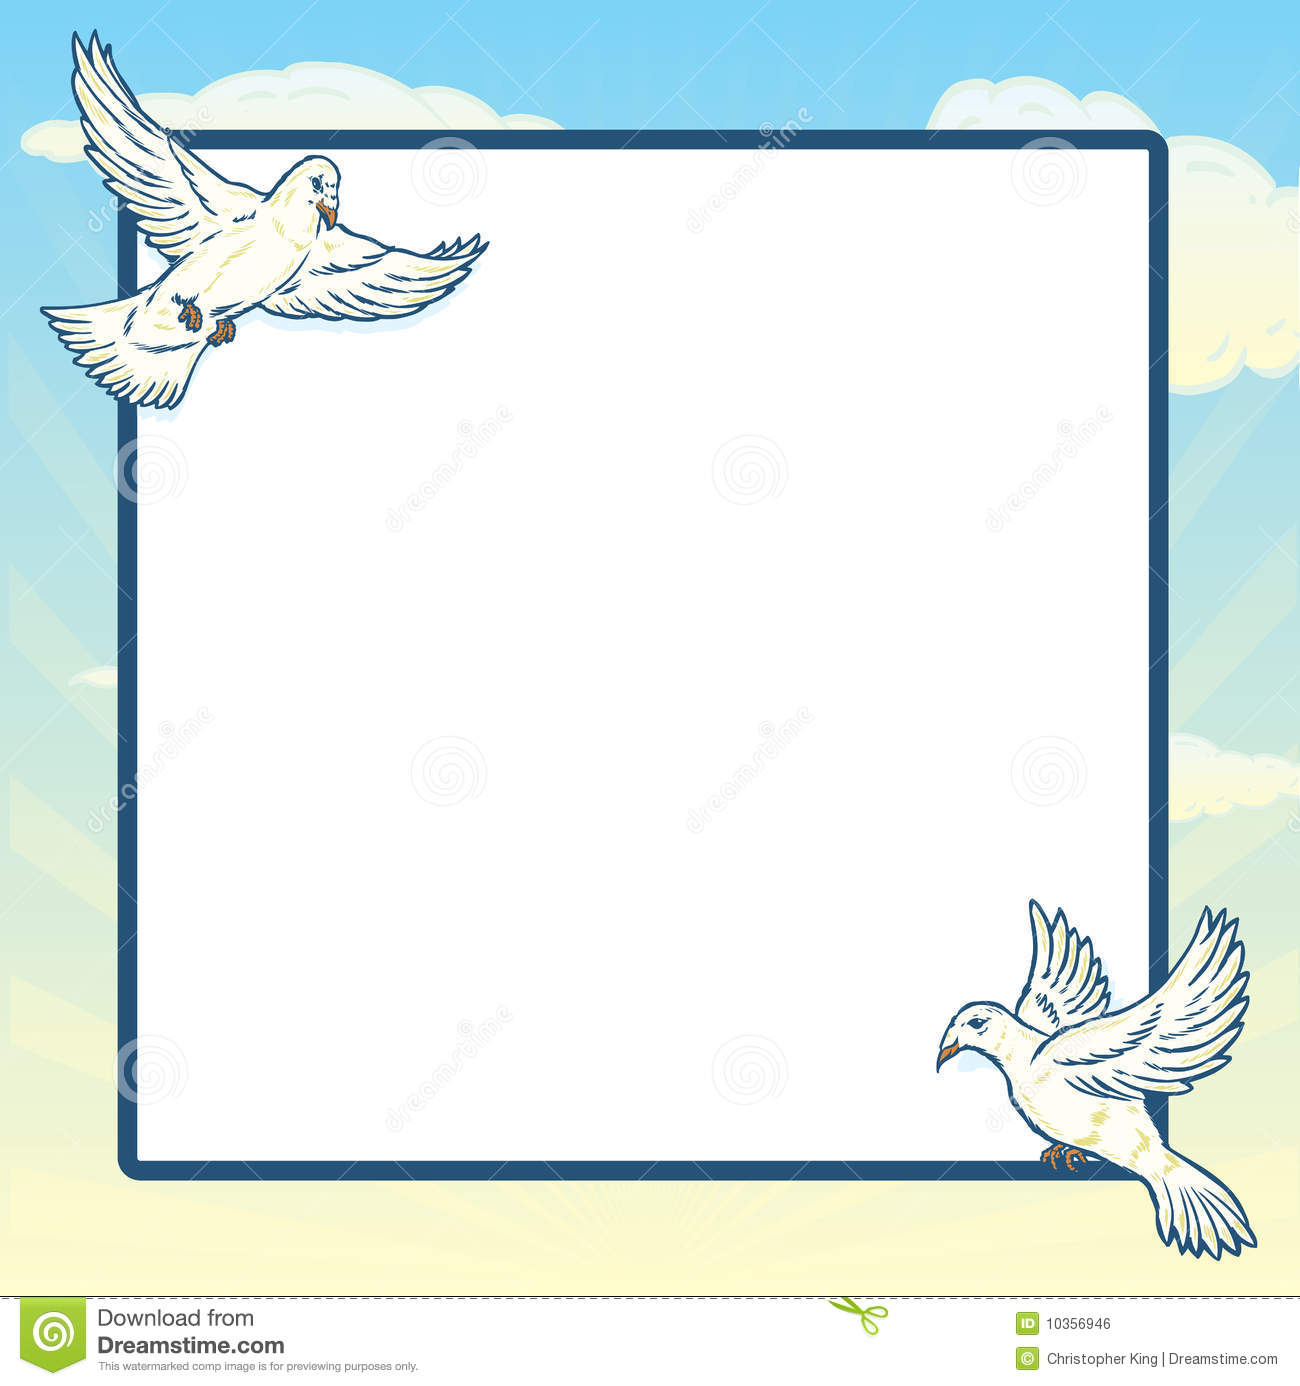 dove in flight frame design